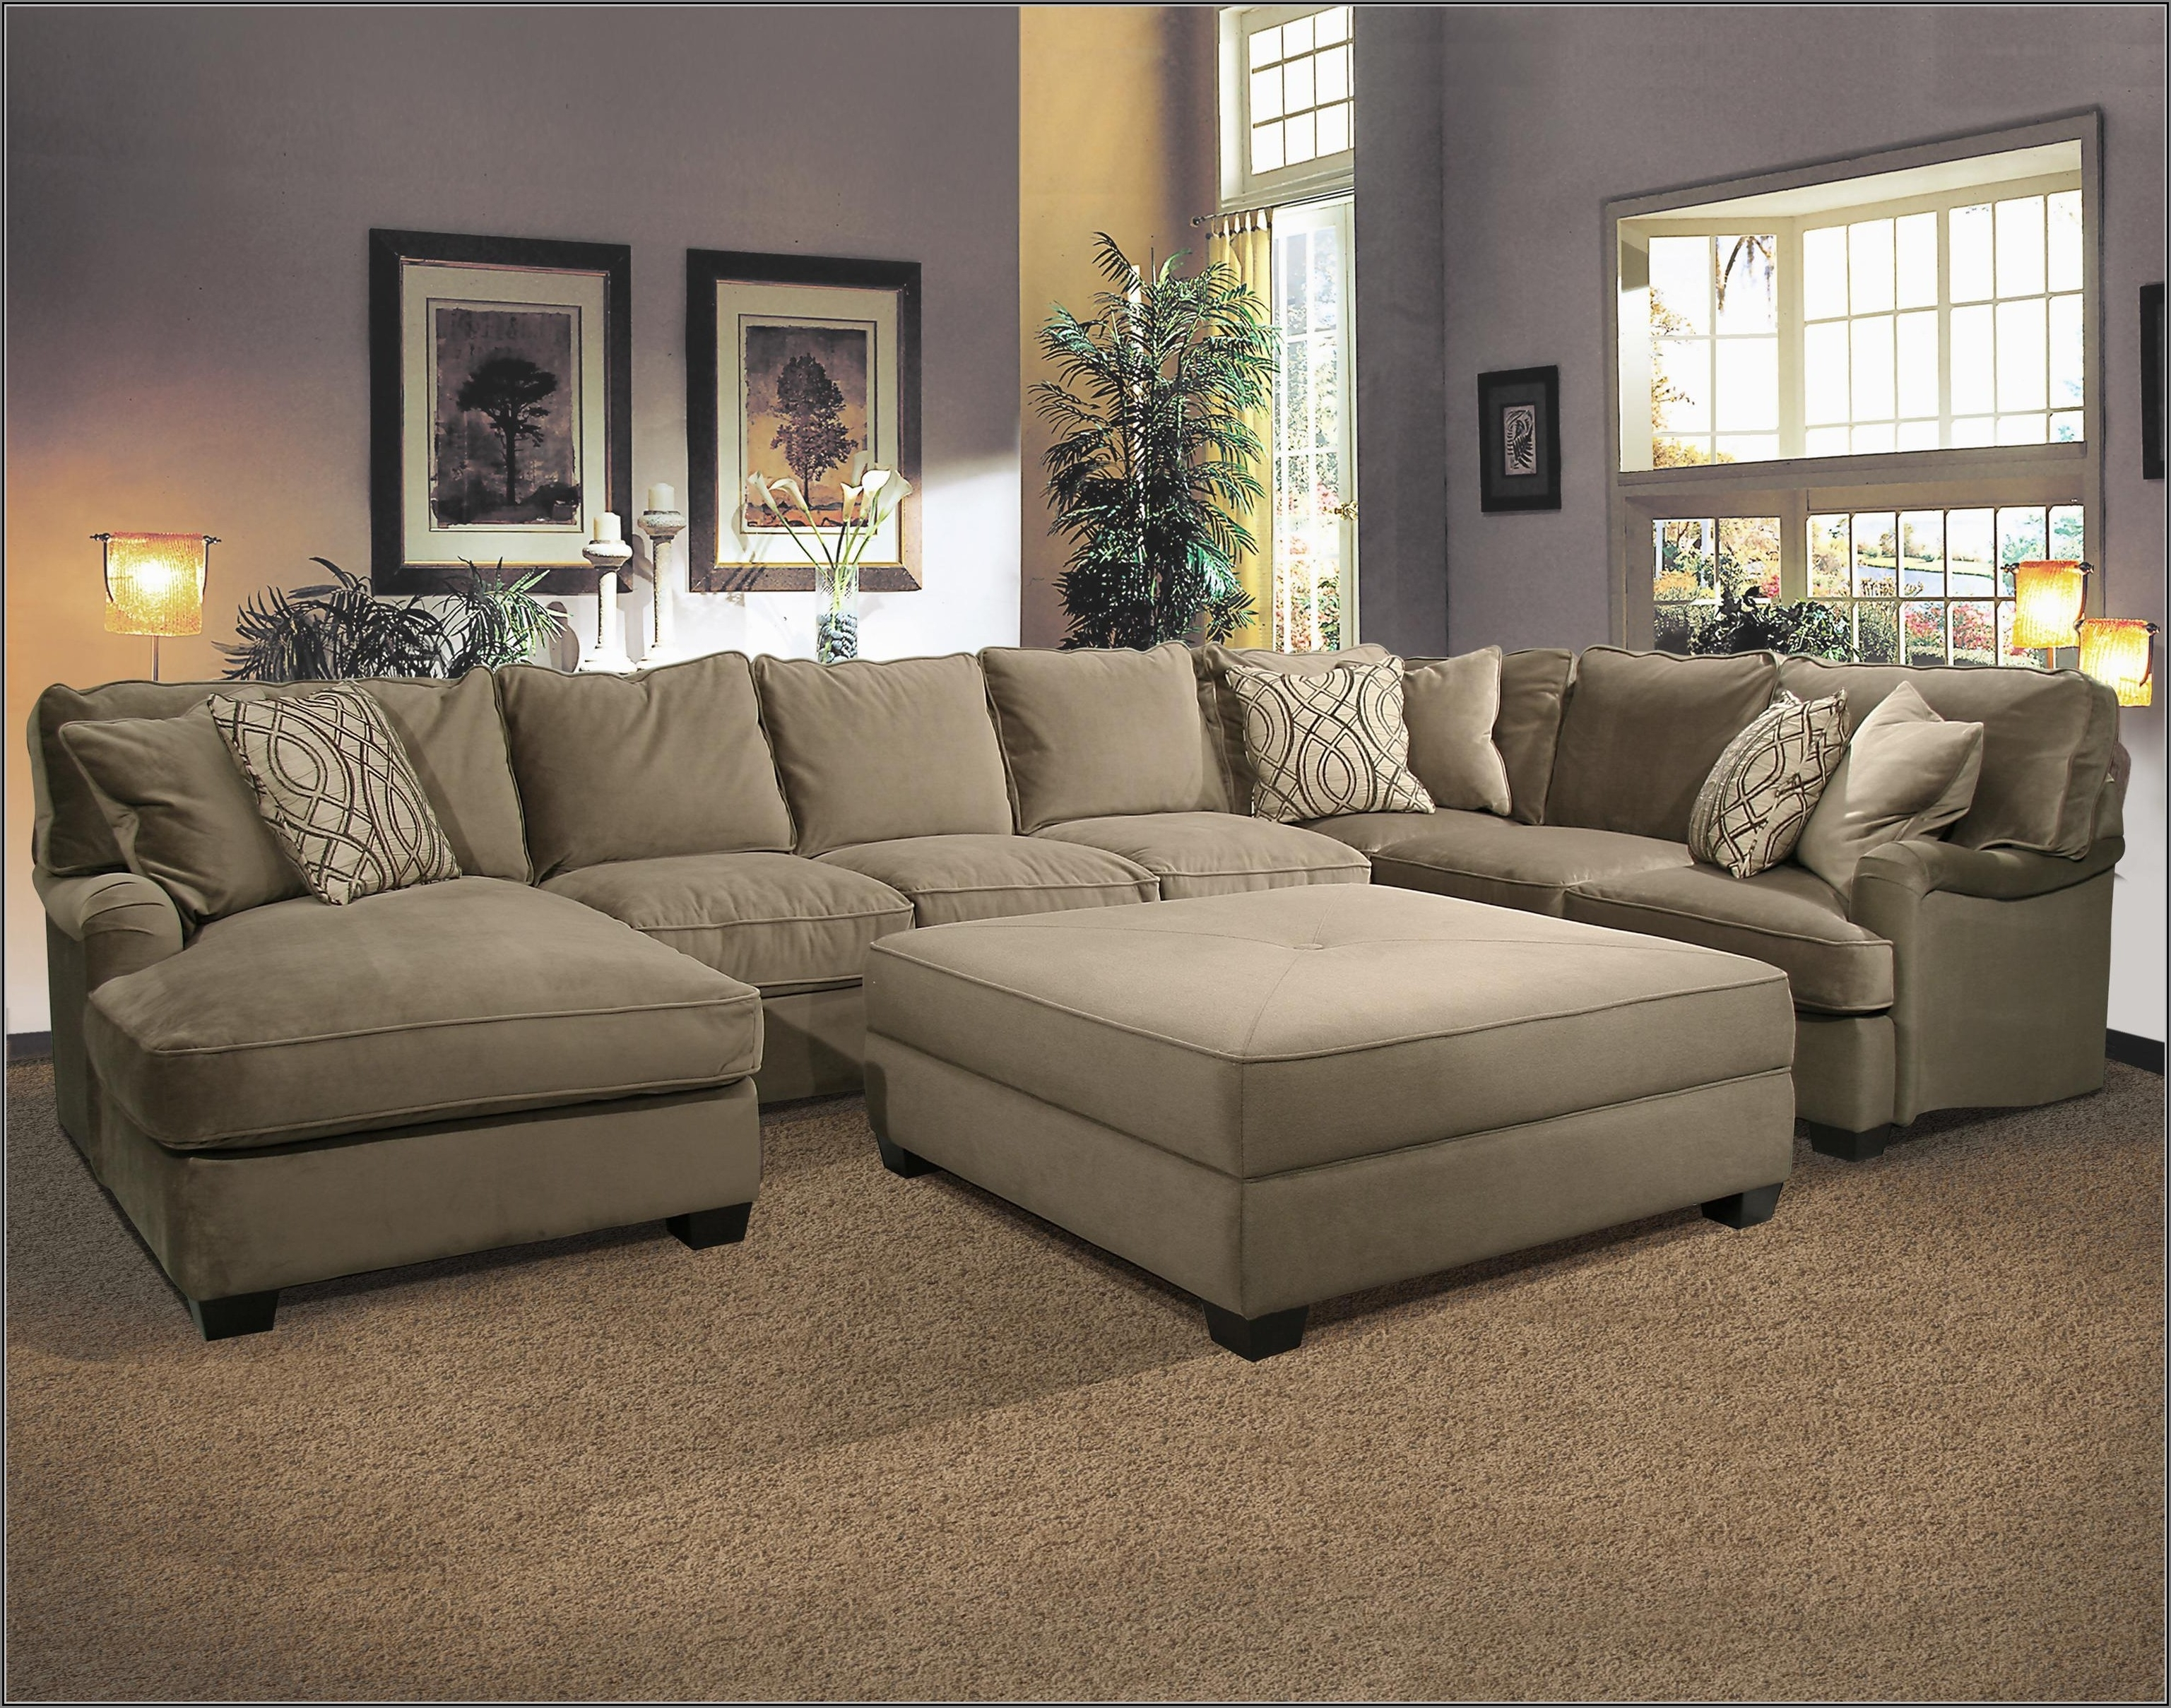 Epic Large Fabric Sectional Sofas 21 On 3 Piece Sectional Sleeper For Popular 3 Piece Sectional Sleeper Sofas (View 8 of 15)